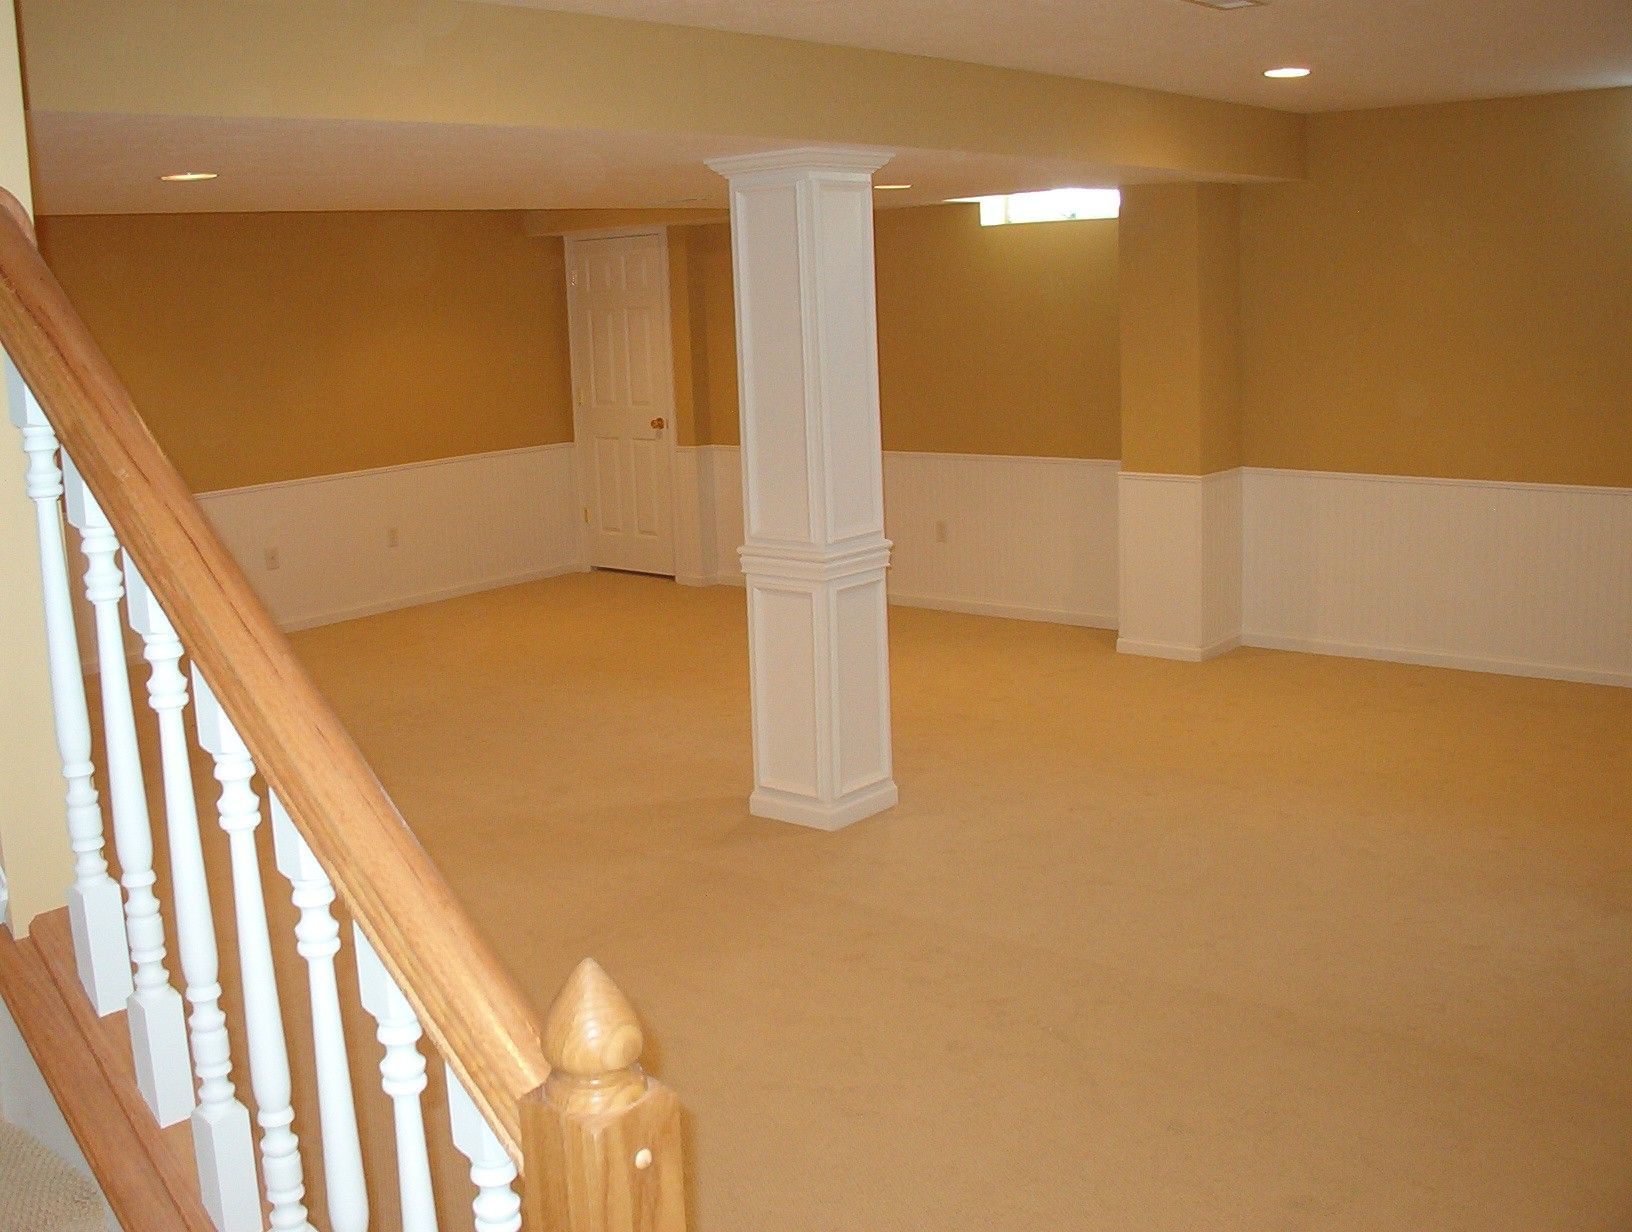 Wall Covering Ideas For Basements Part - 19: Finished Basement Ideas On A Budget - Decorative Pillar Covering.  Wainscoting